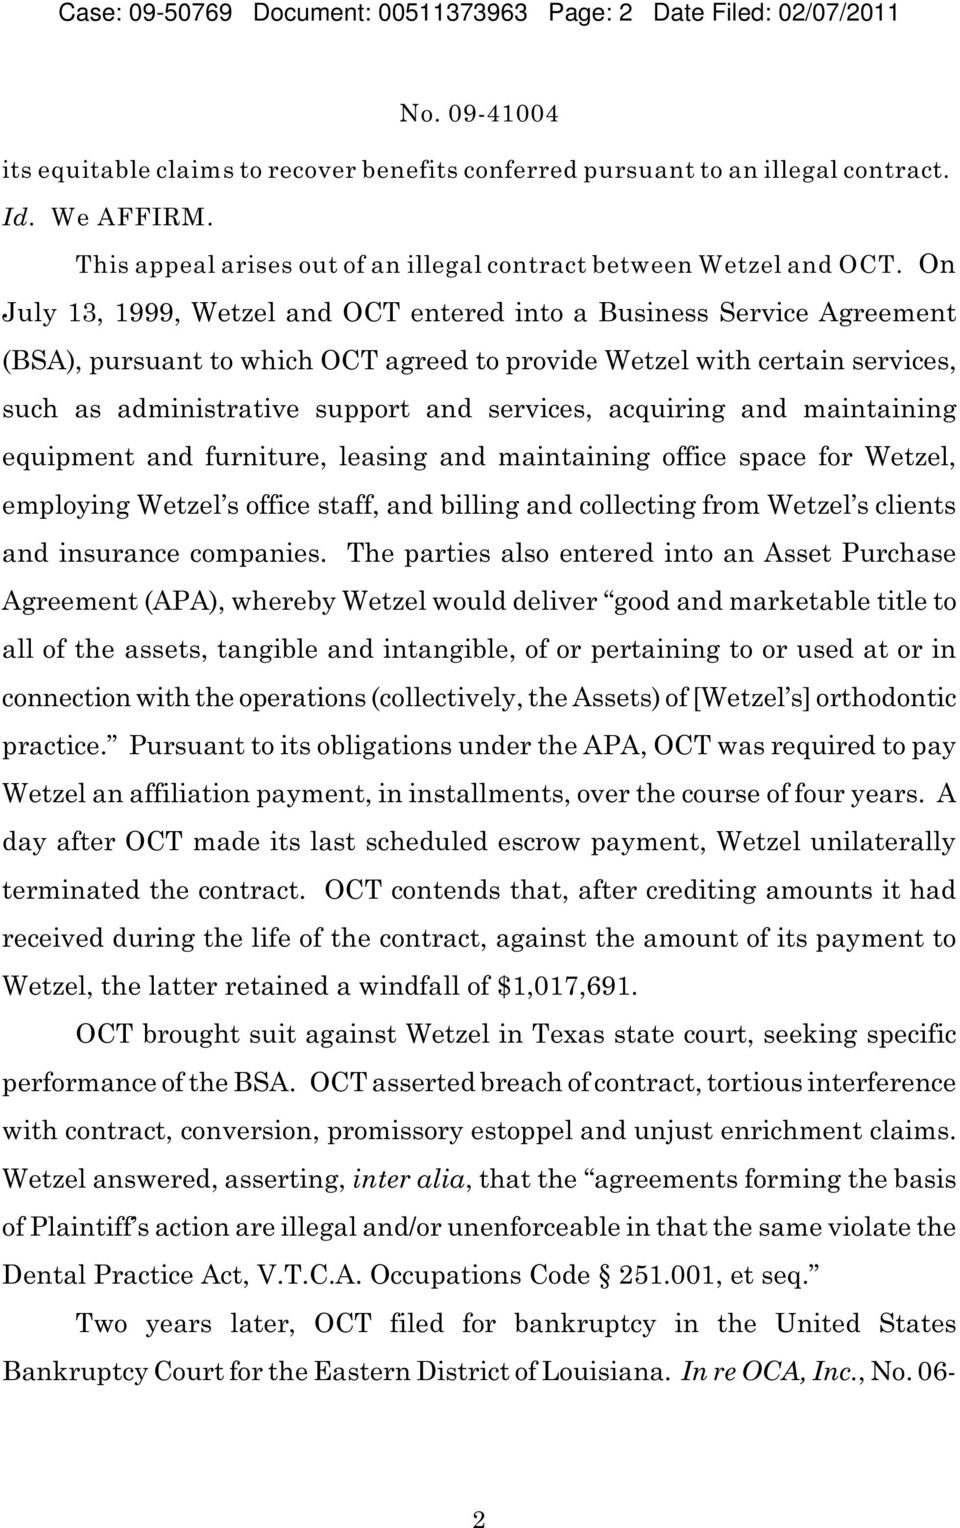 On July 13, 1999, Wetzel and OCT entered into a Business Service Agreement (BSA), pursuant to which OCT agreed to provide Wetzel with certain services, such as administrative support and services,